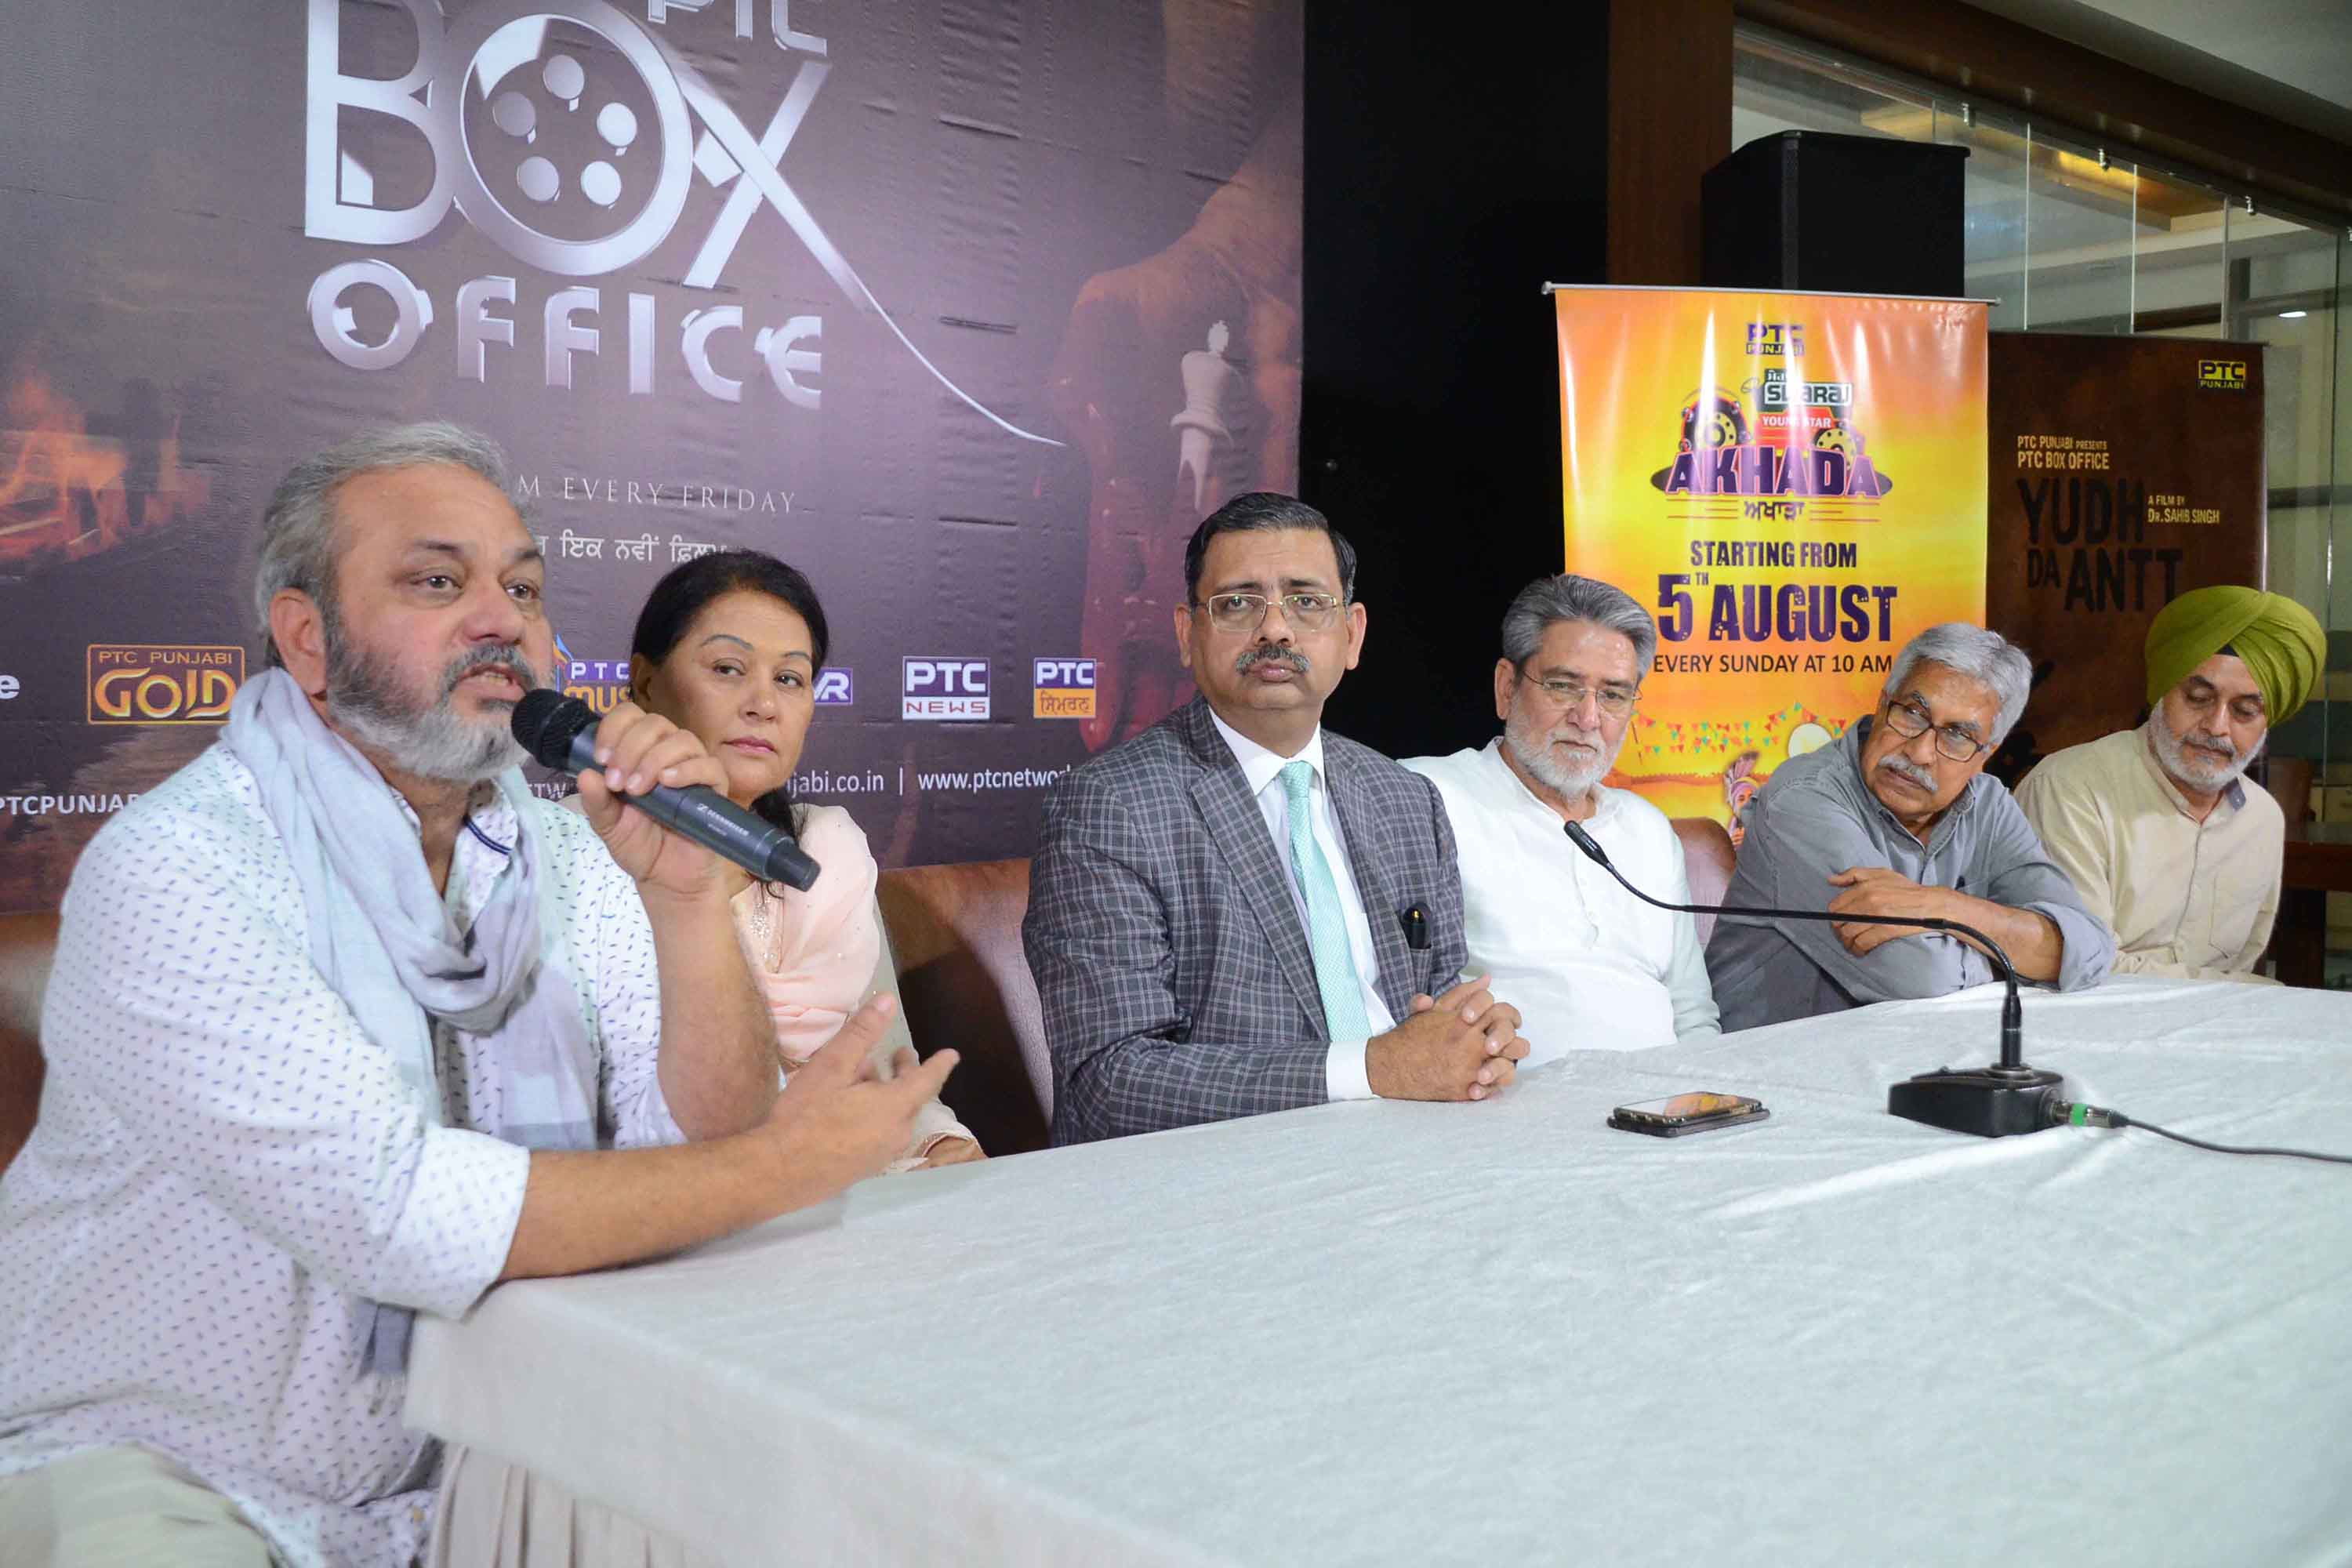 PTC PUNJABI PTC BOX OFFICE